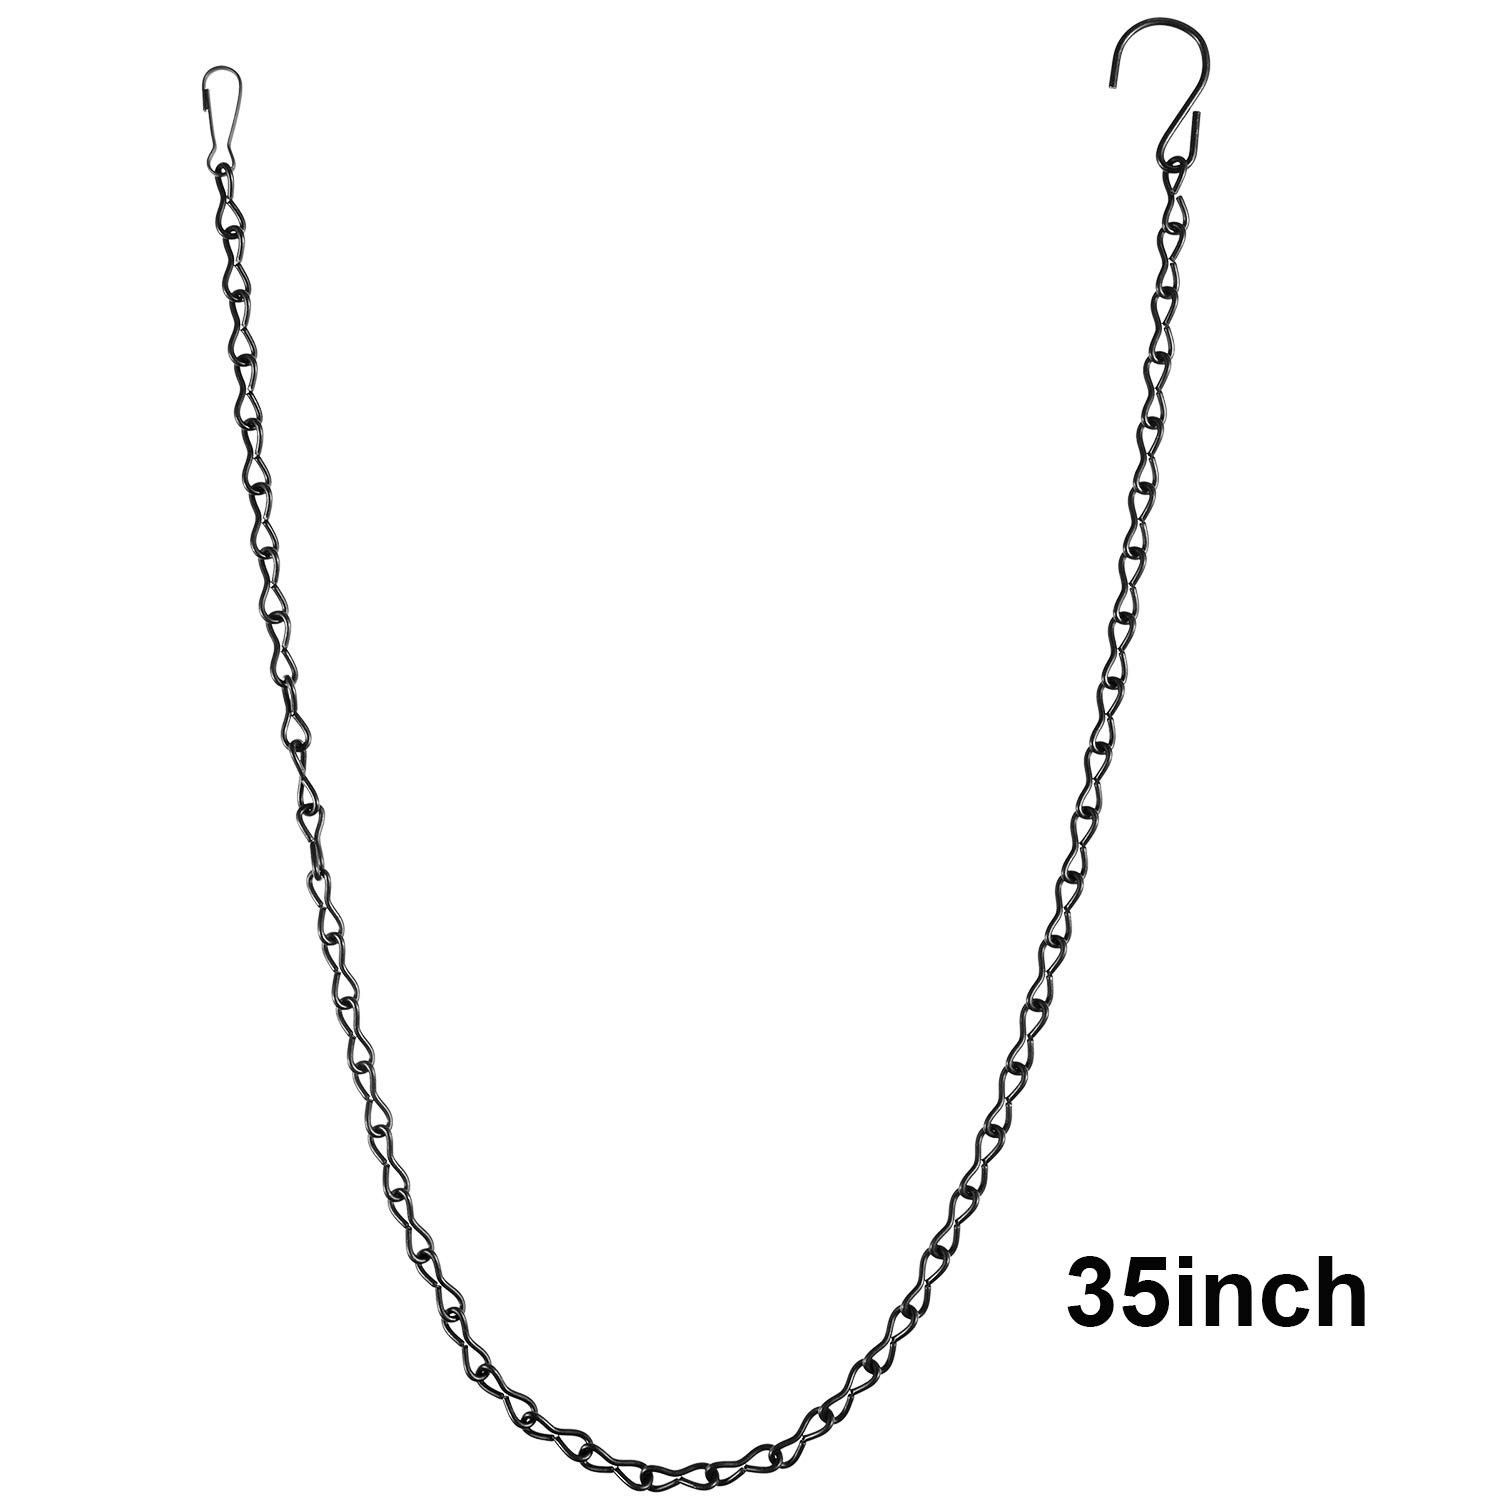 Silver Lanterns and Ornaments eBoot 35 Inch Hanging Chain for Bird Feeders Planters